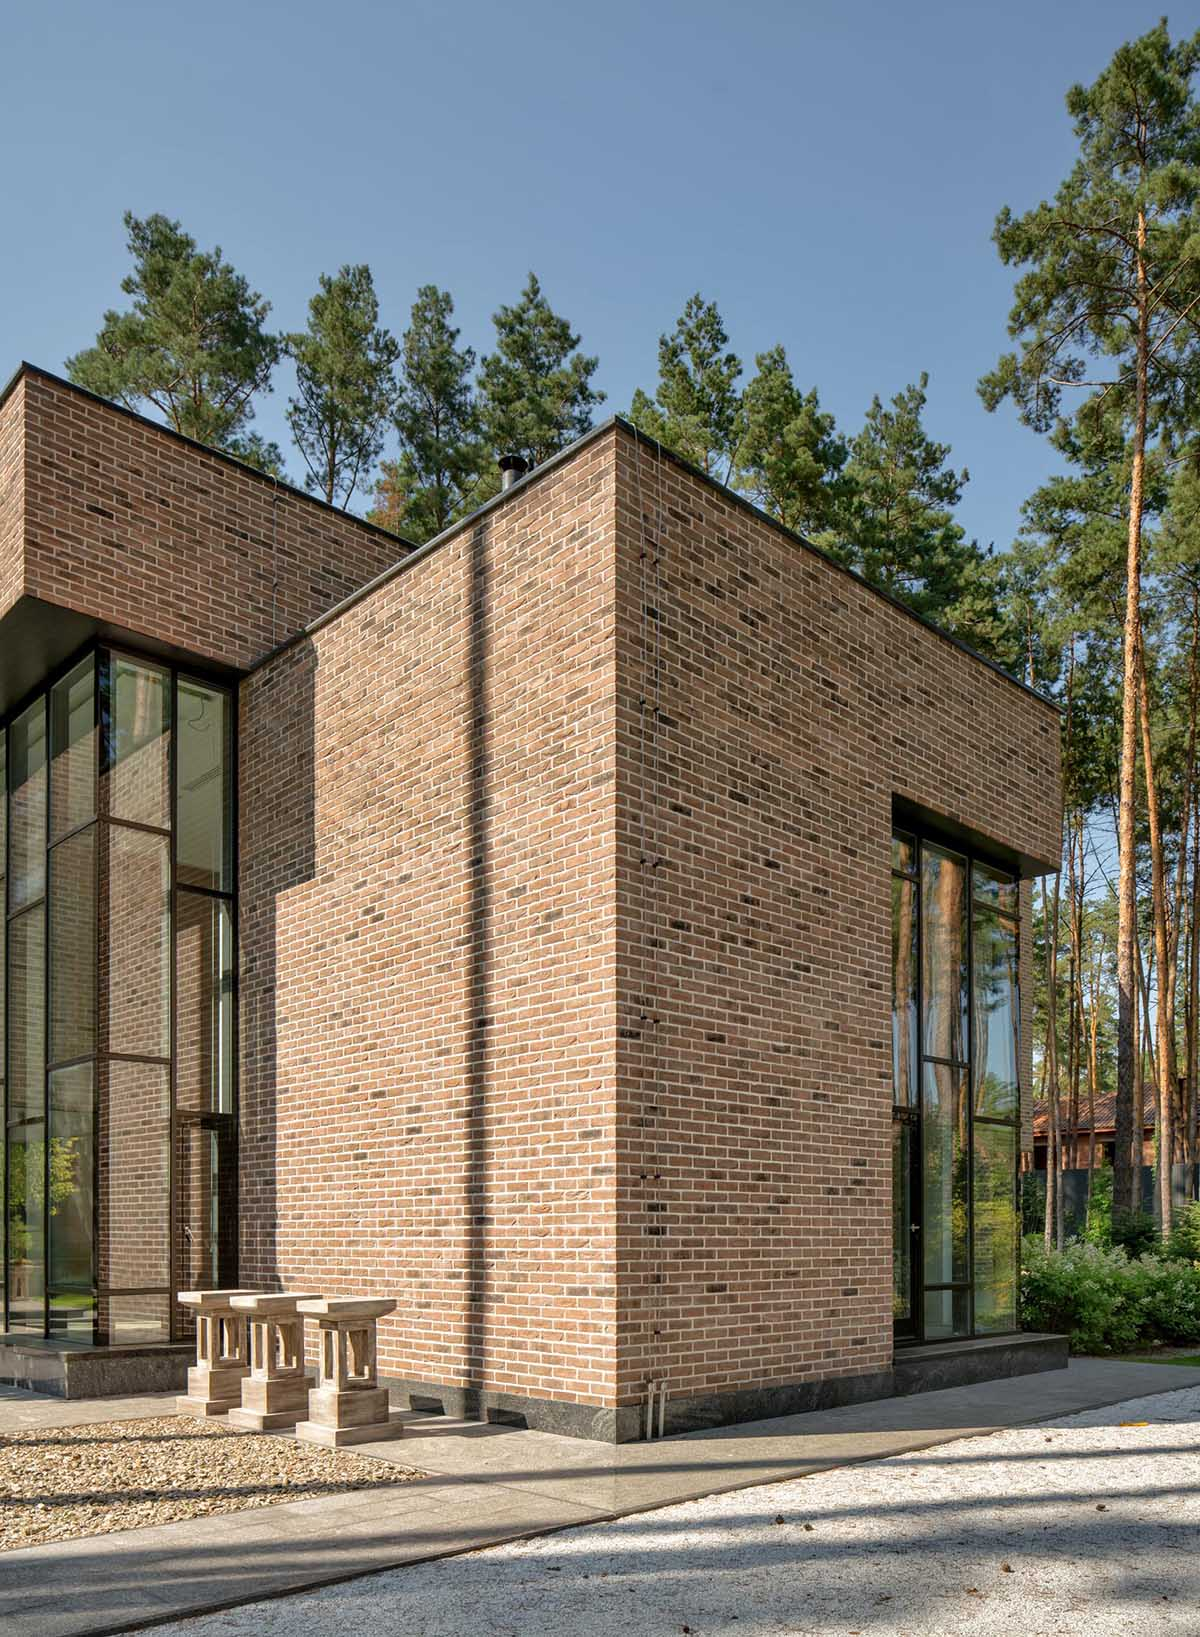 A modern brick home with black window frames.